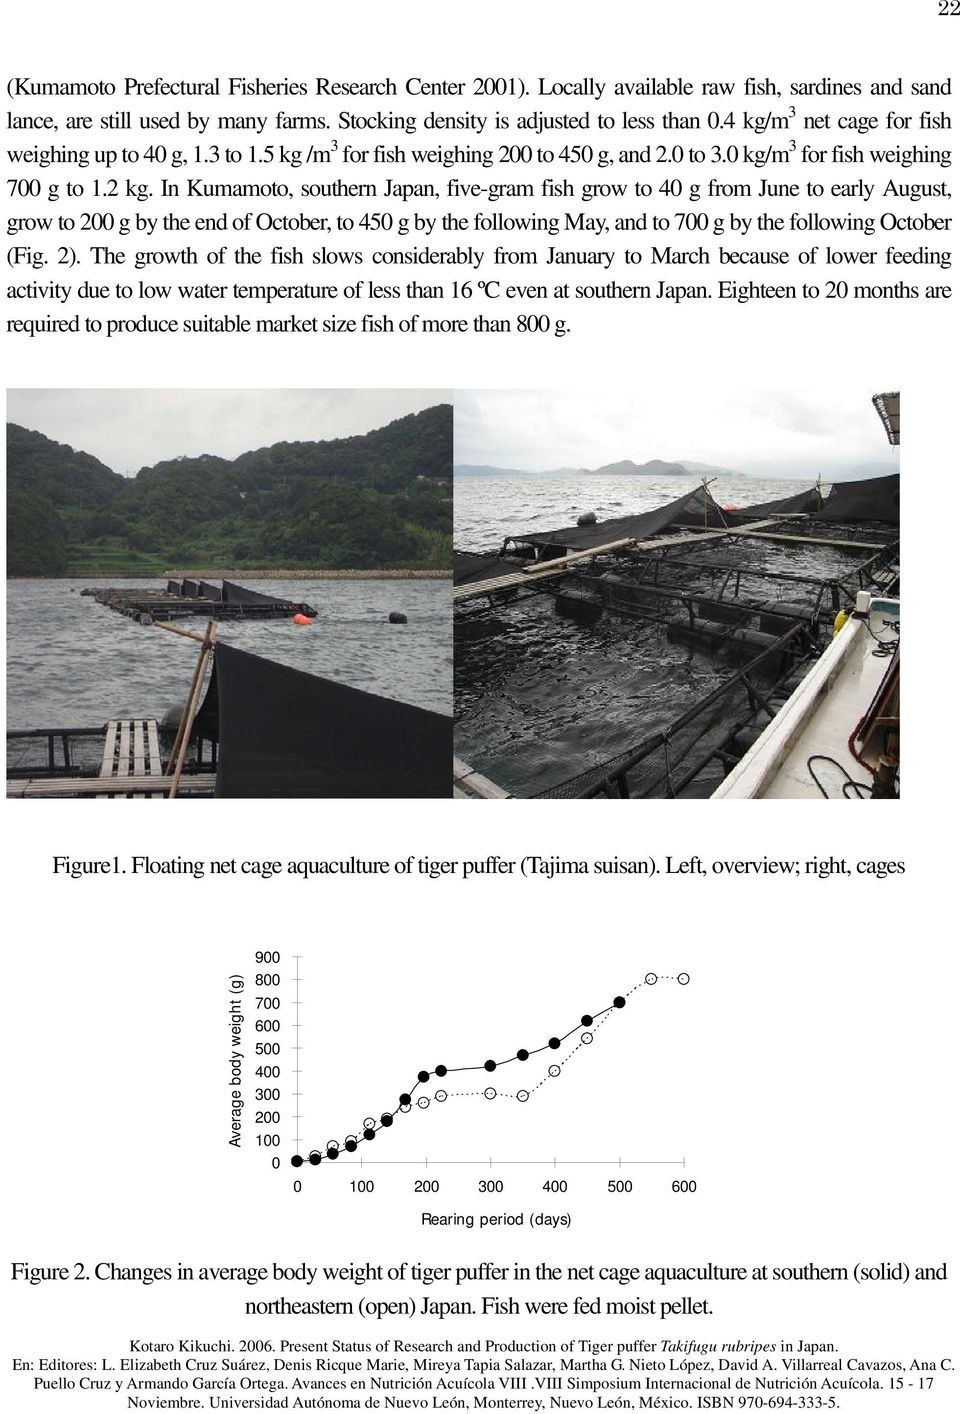 In Kumamoto, southern Japan, five-gram fish grow to 40 g from June to early August, grow to 200 g by the end of October, to 450 g by the following May, and to 700 g by the following October (Fig. 2).